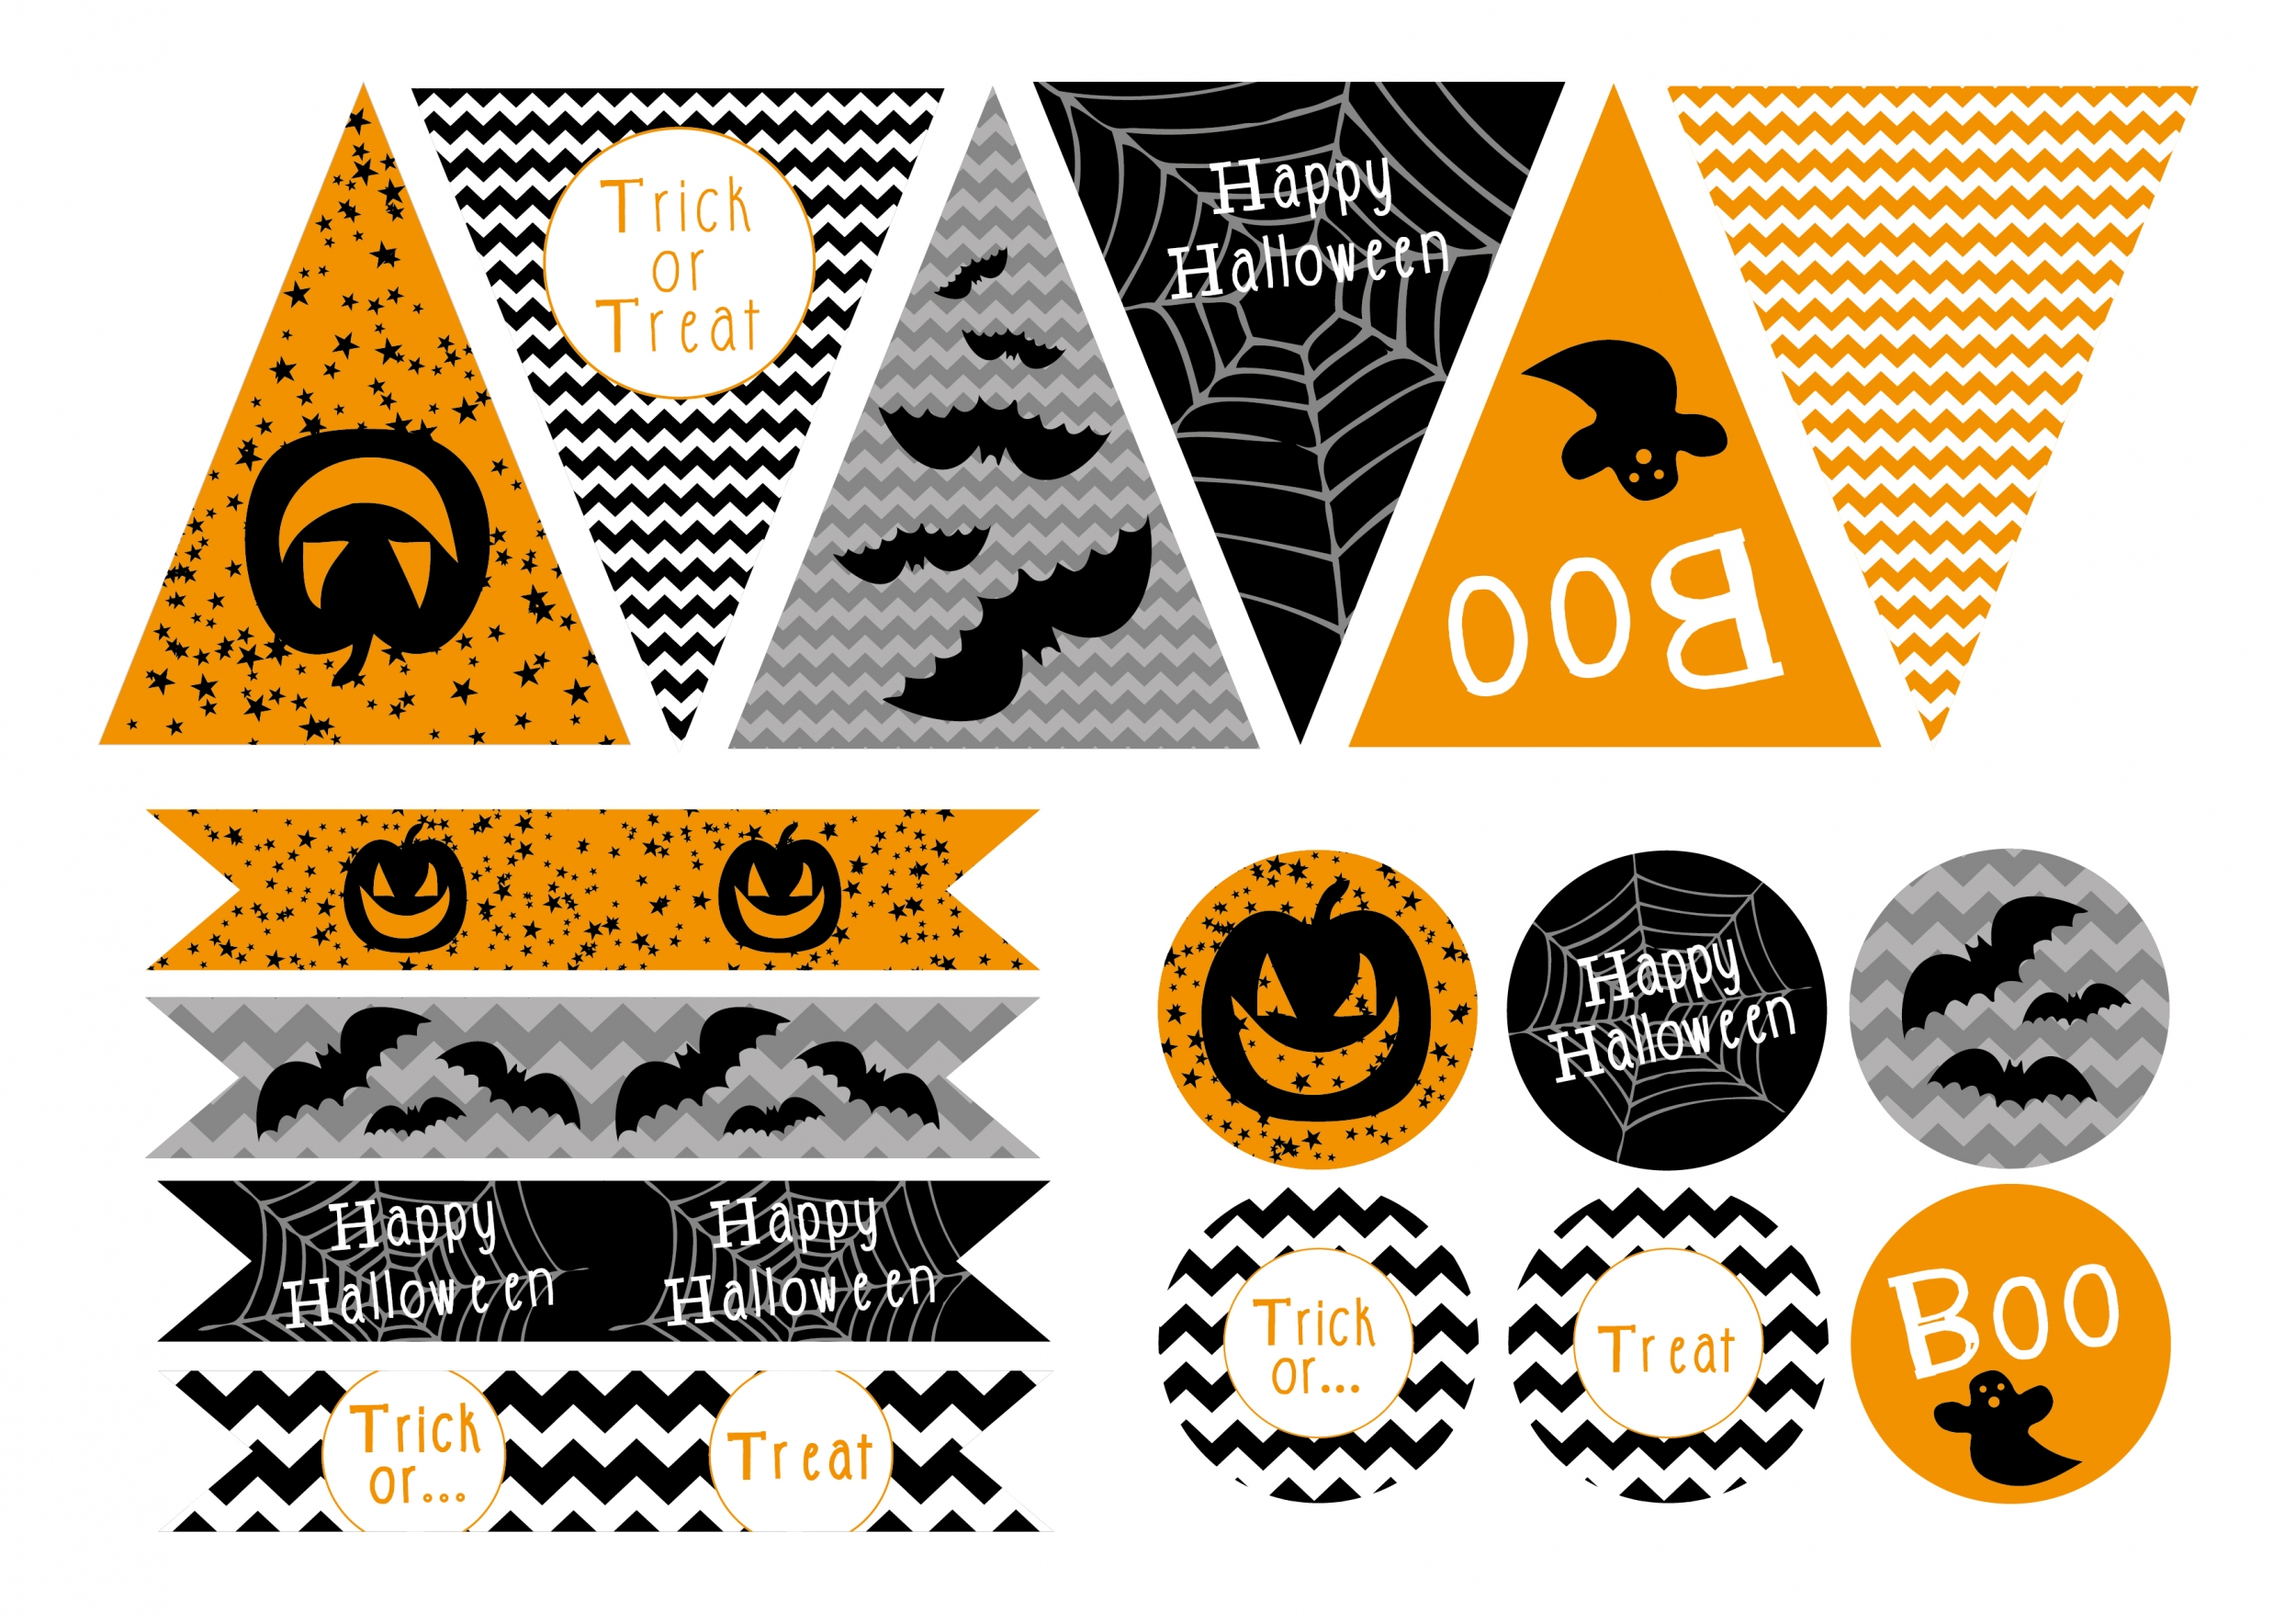 D co halloween a faire soi meme printable gratuit a imprimer - Halloween decoration a faire soi meme ...